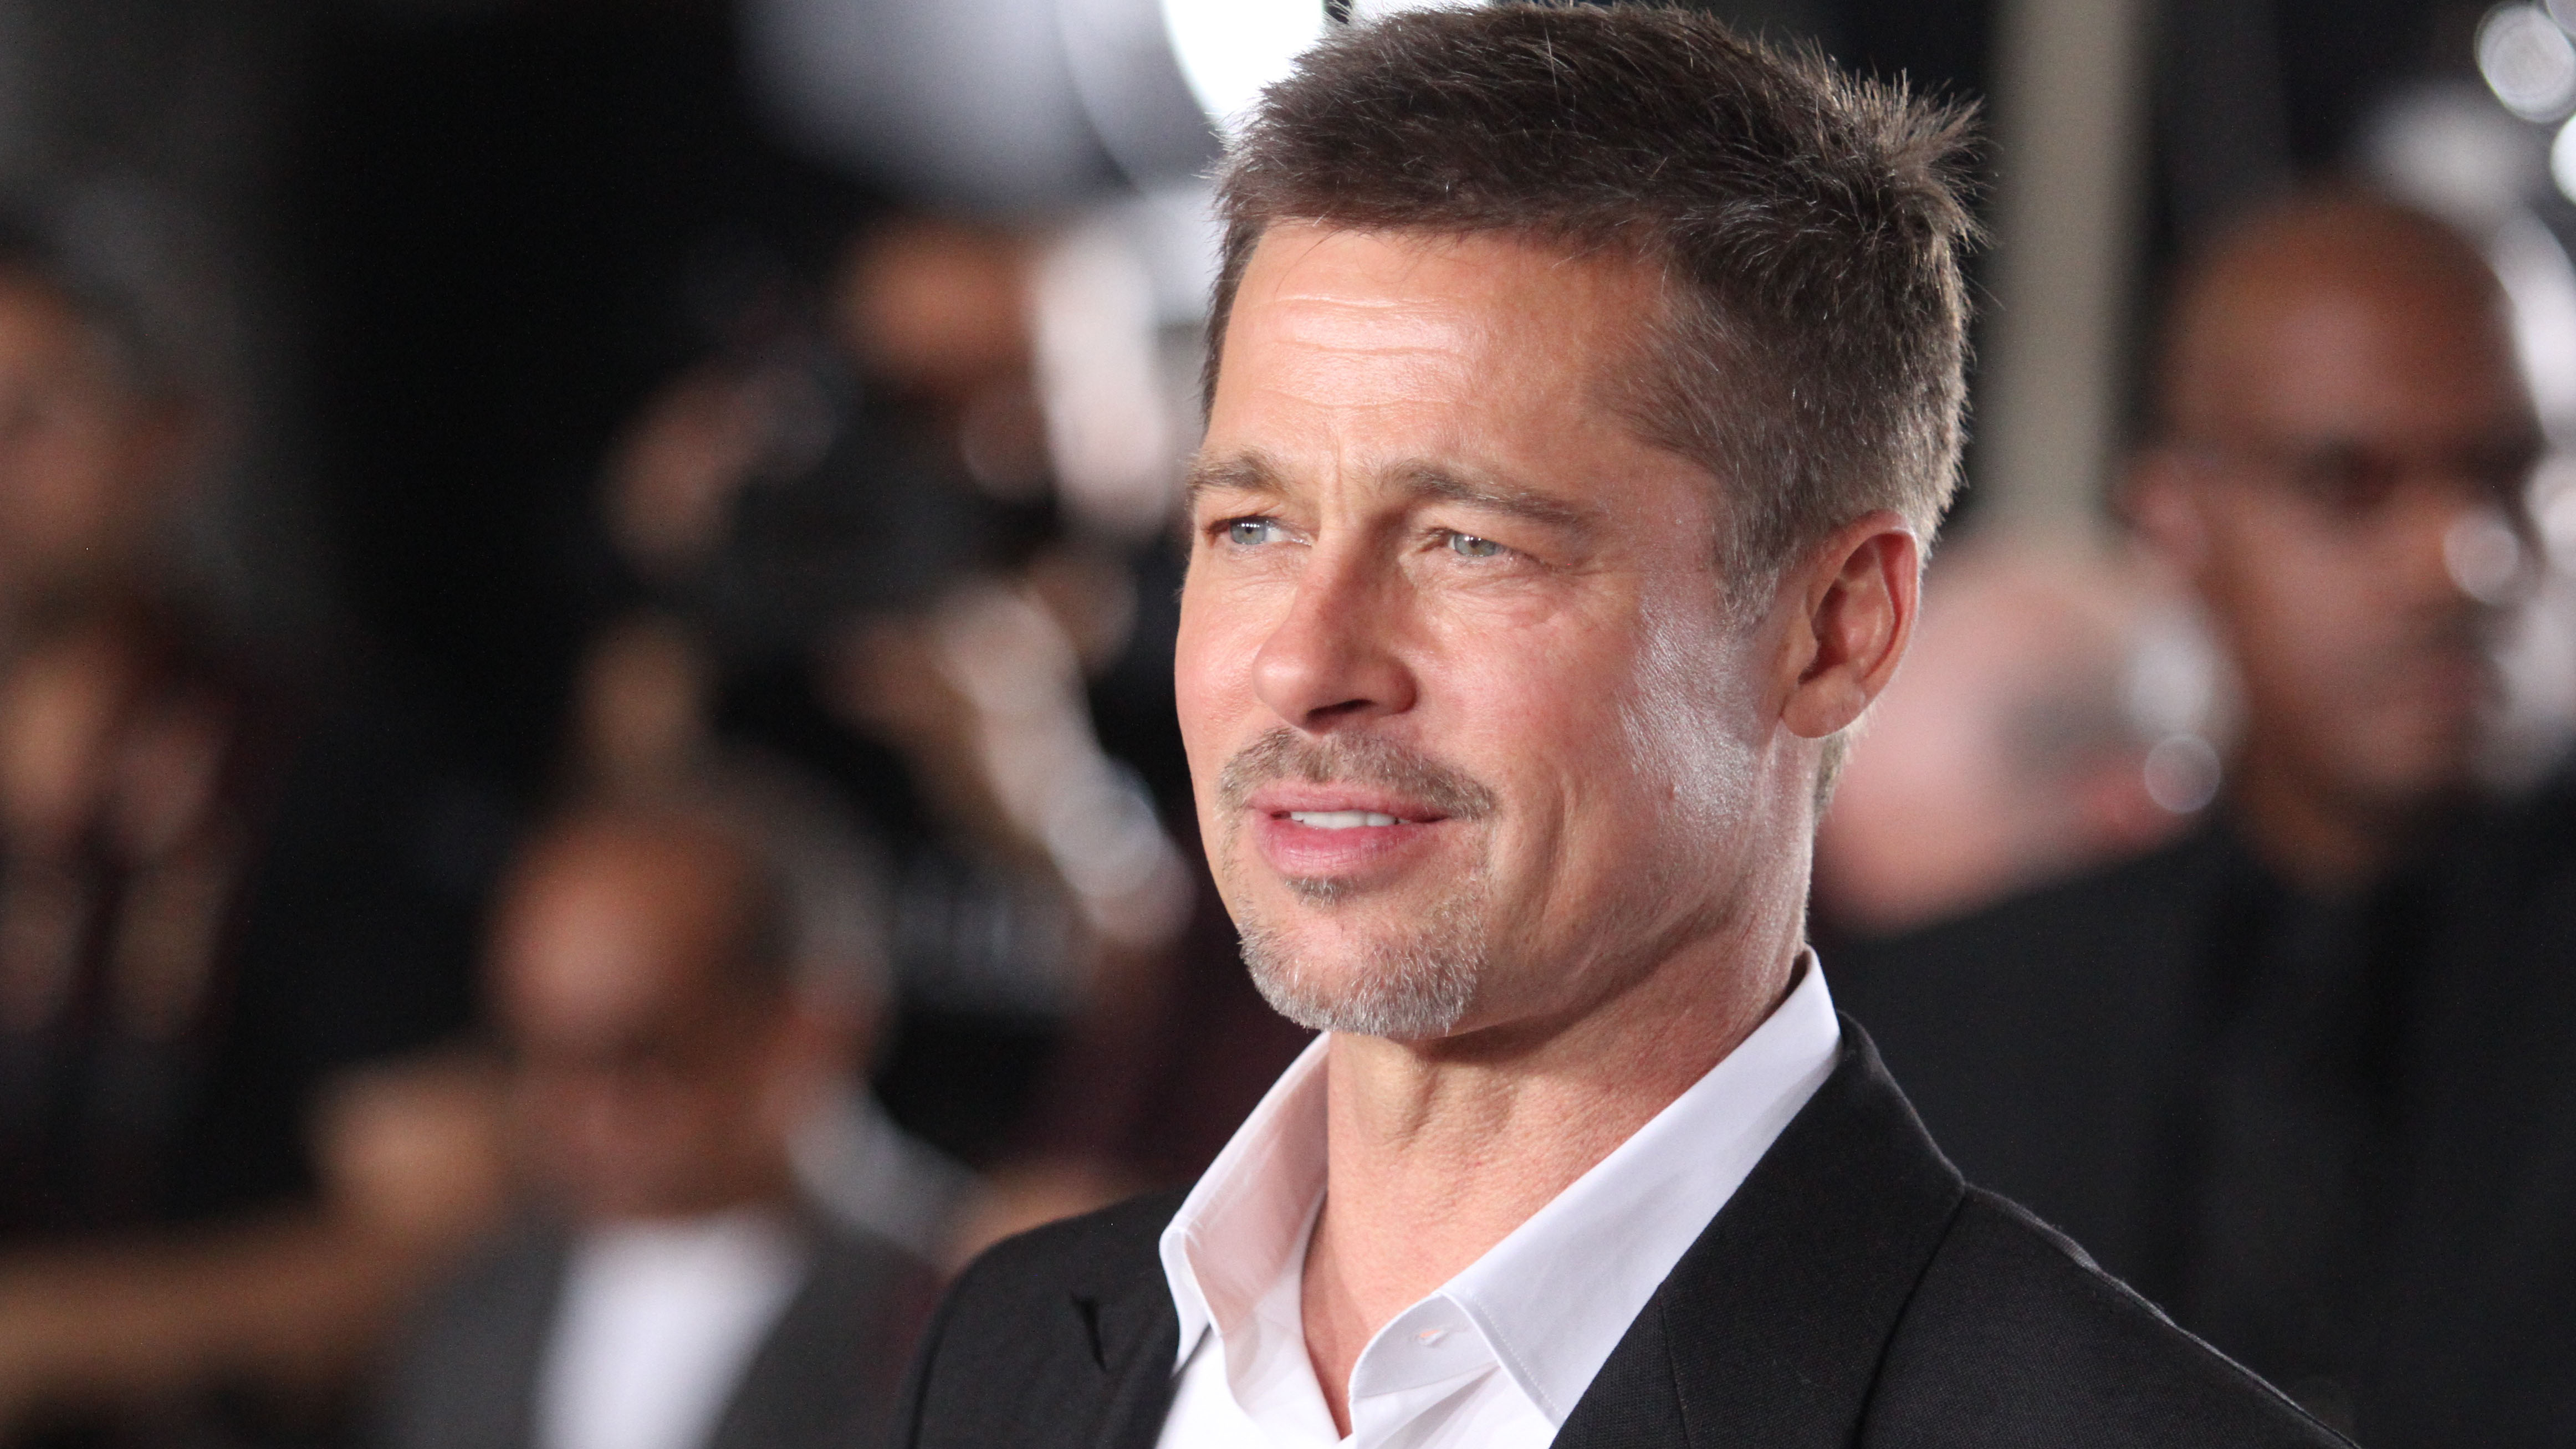 This is the unexpected reason why Brad Pitt missed the Oscars 2019